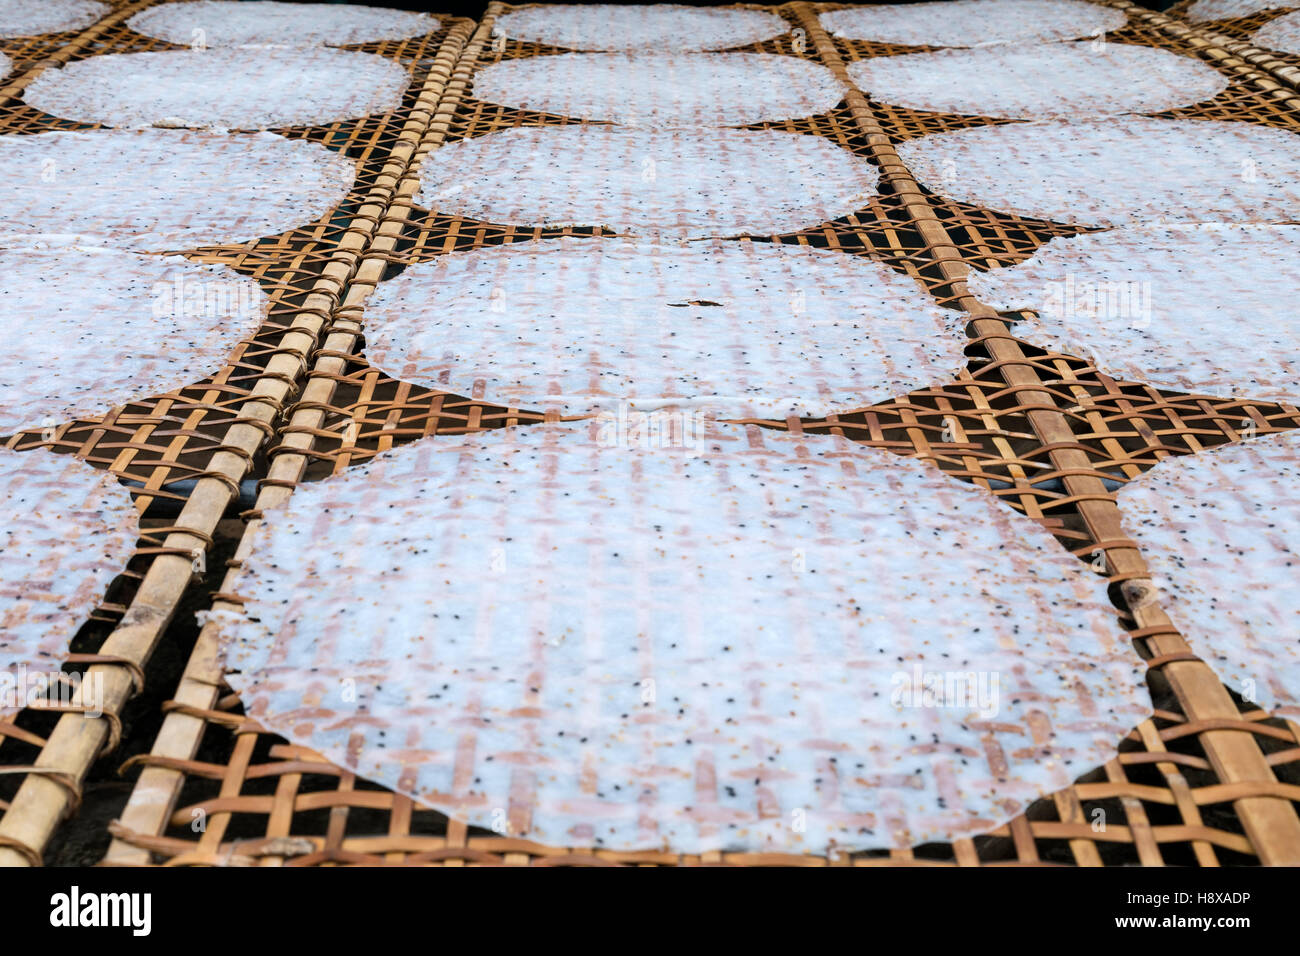 rice noodles lying out for drying in Cai Be, Mekong Delta, Vietnam, Asia - Stock Image